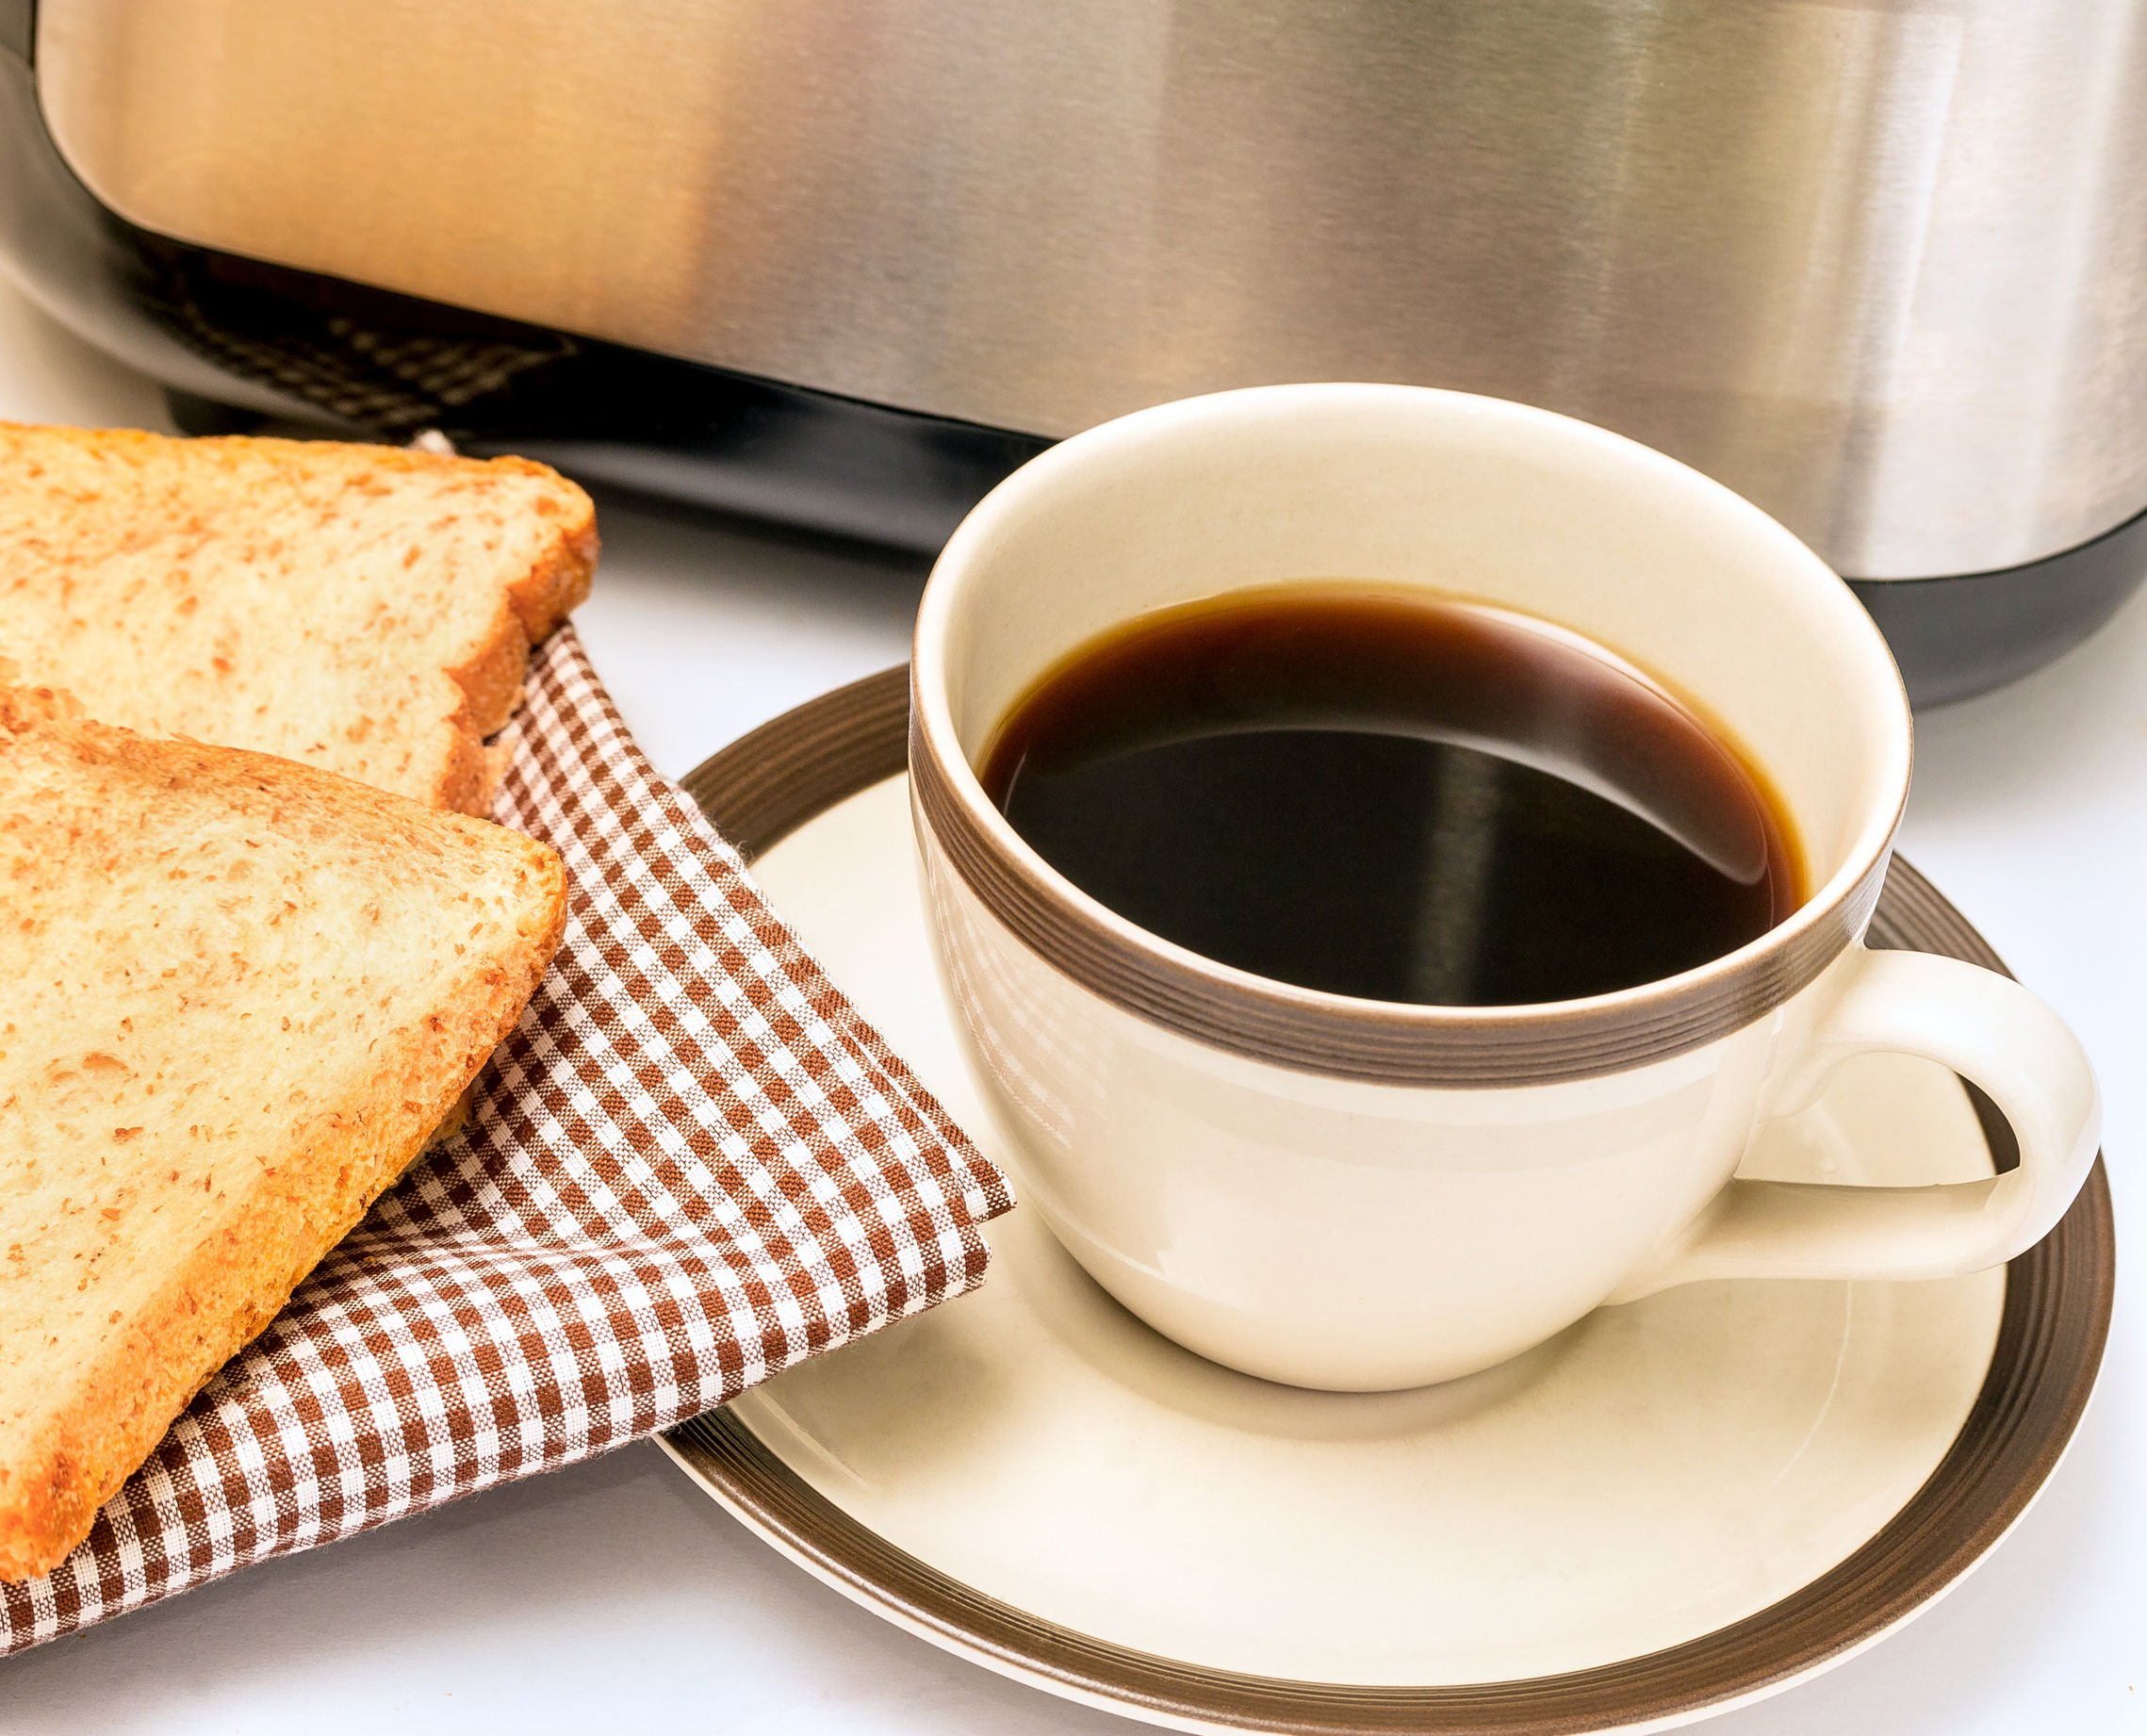 61952266 - coffee and toast showing morning meal and toasted